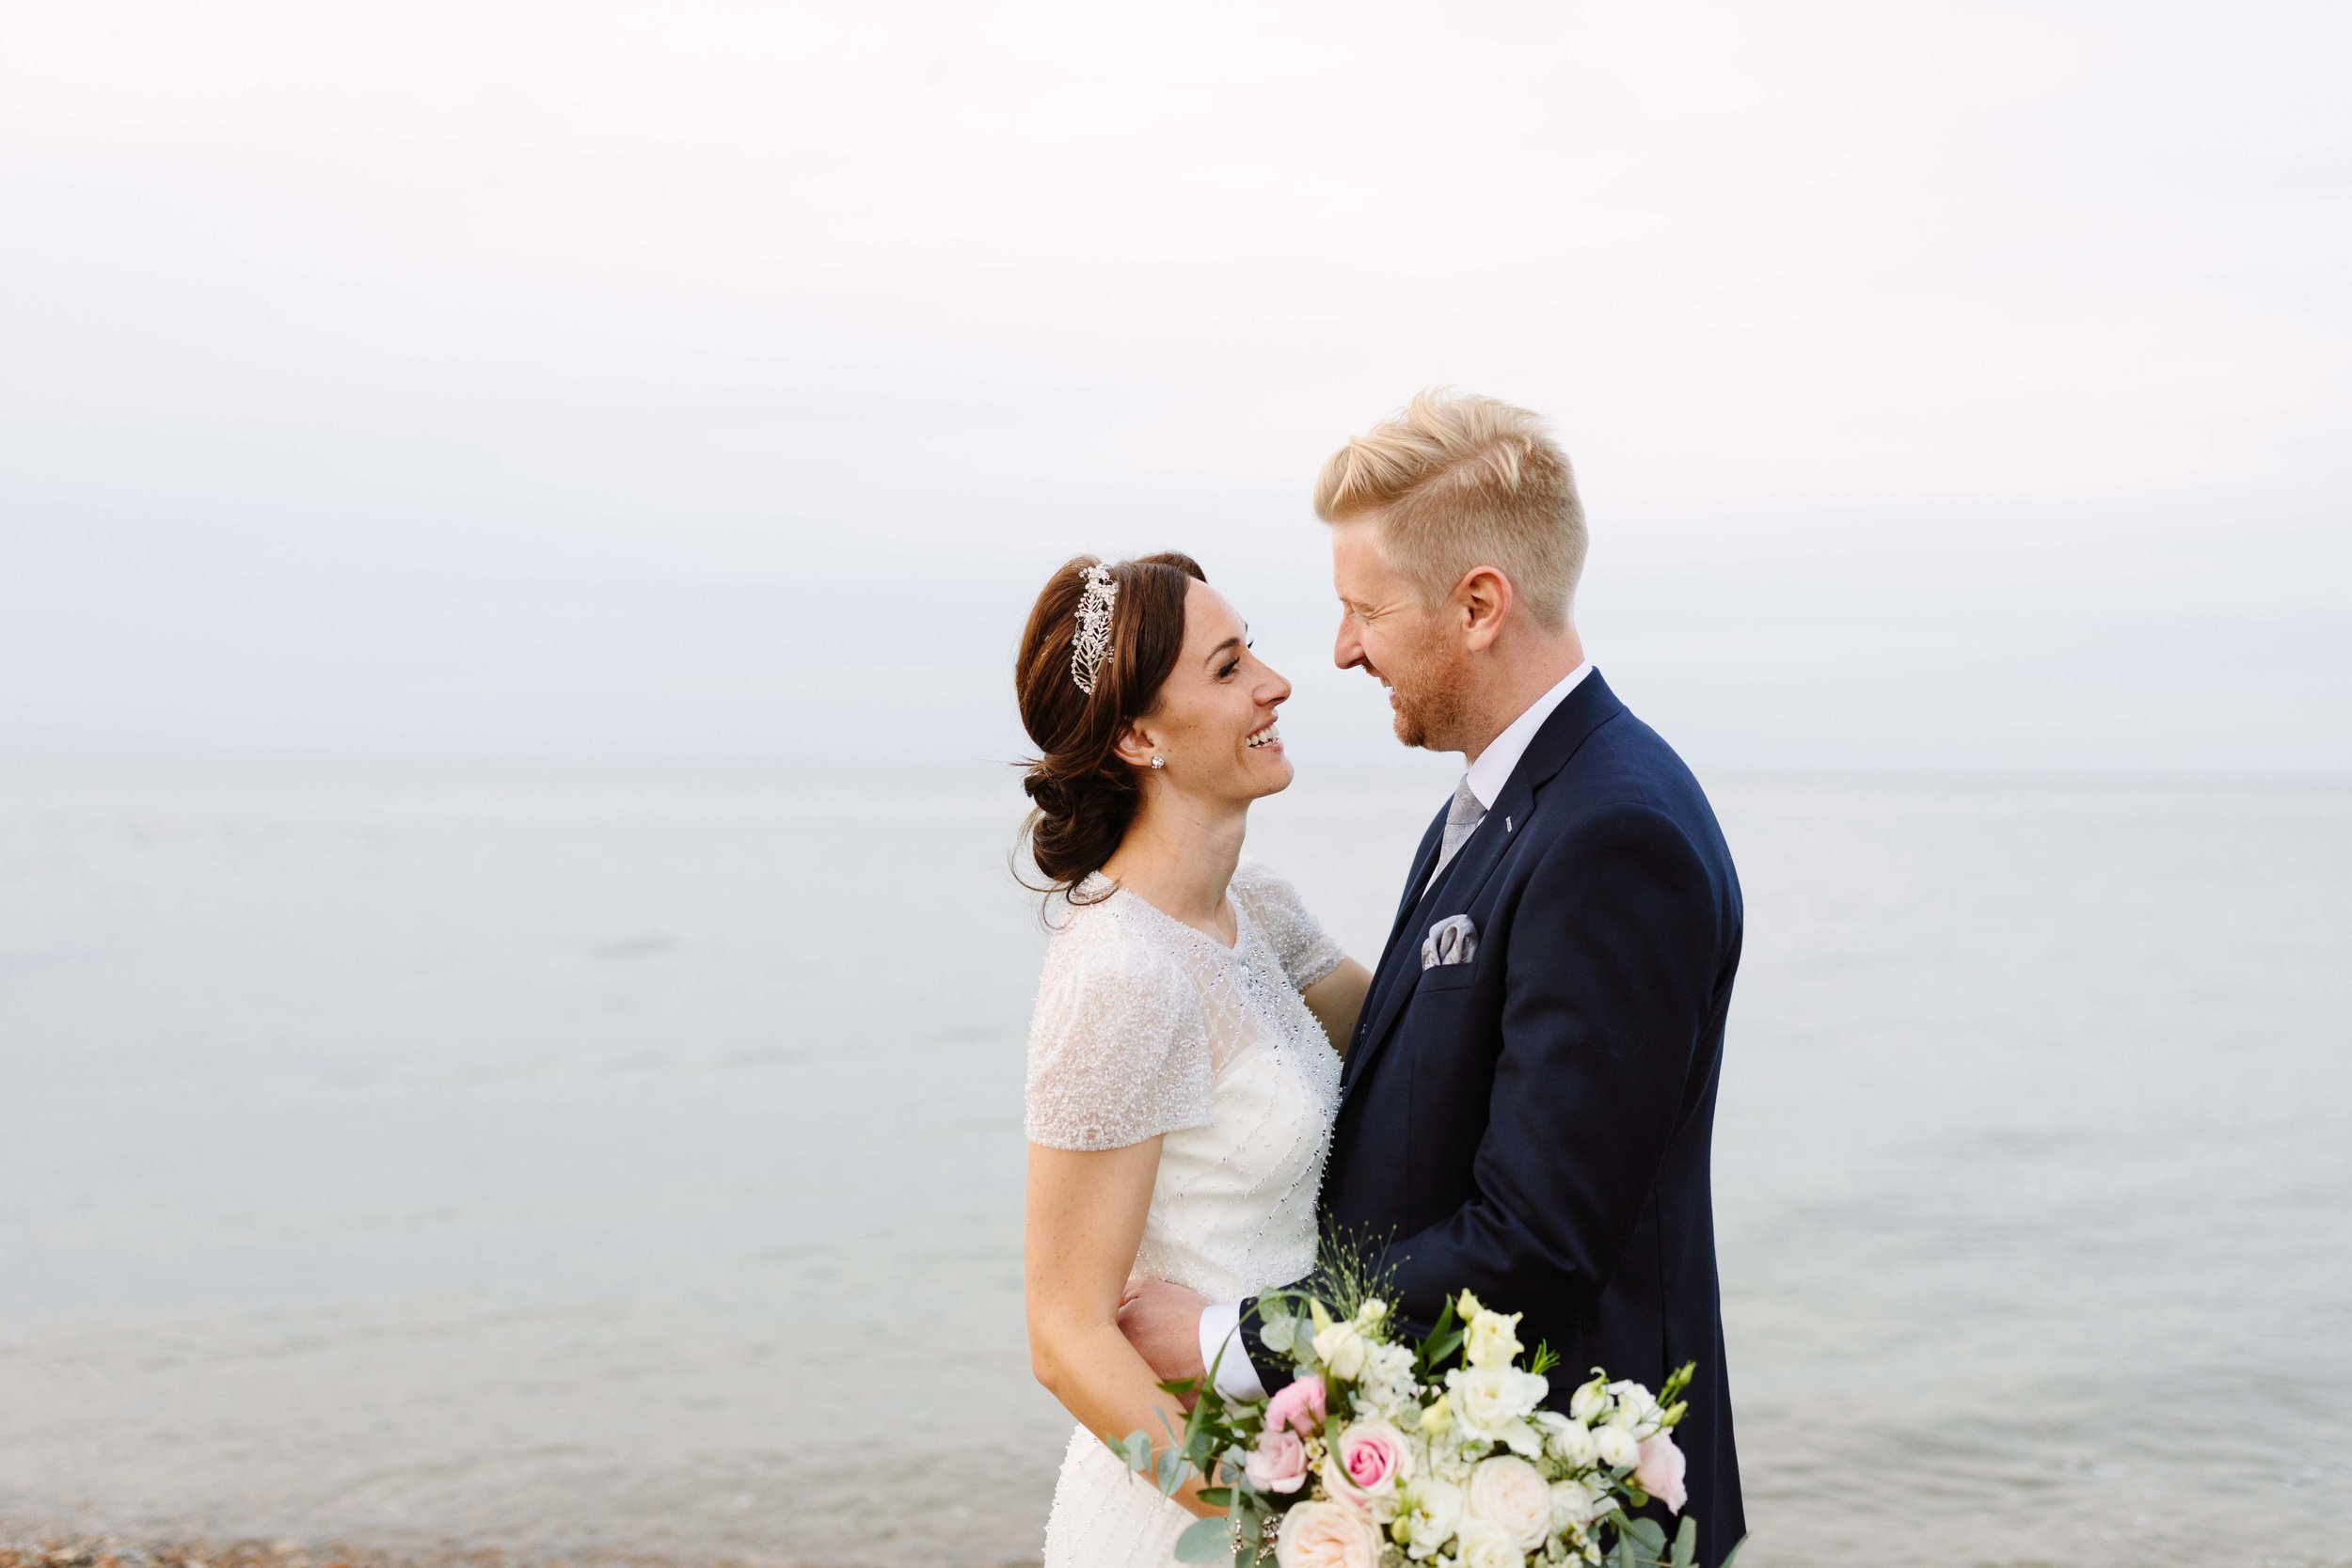 Charlotte & Mark   East Quay Wedding Venue | Whitstable